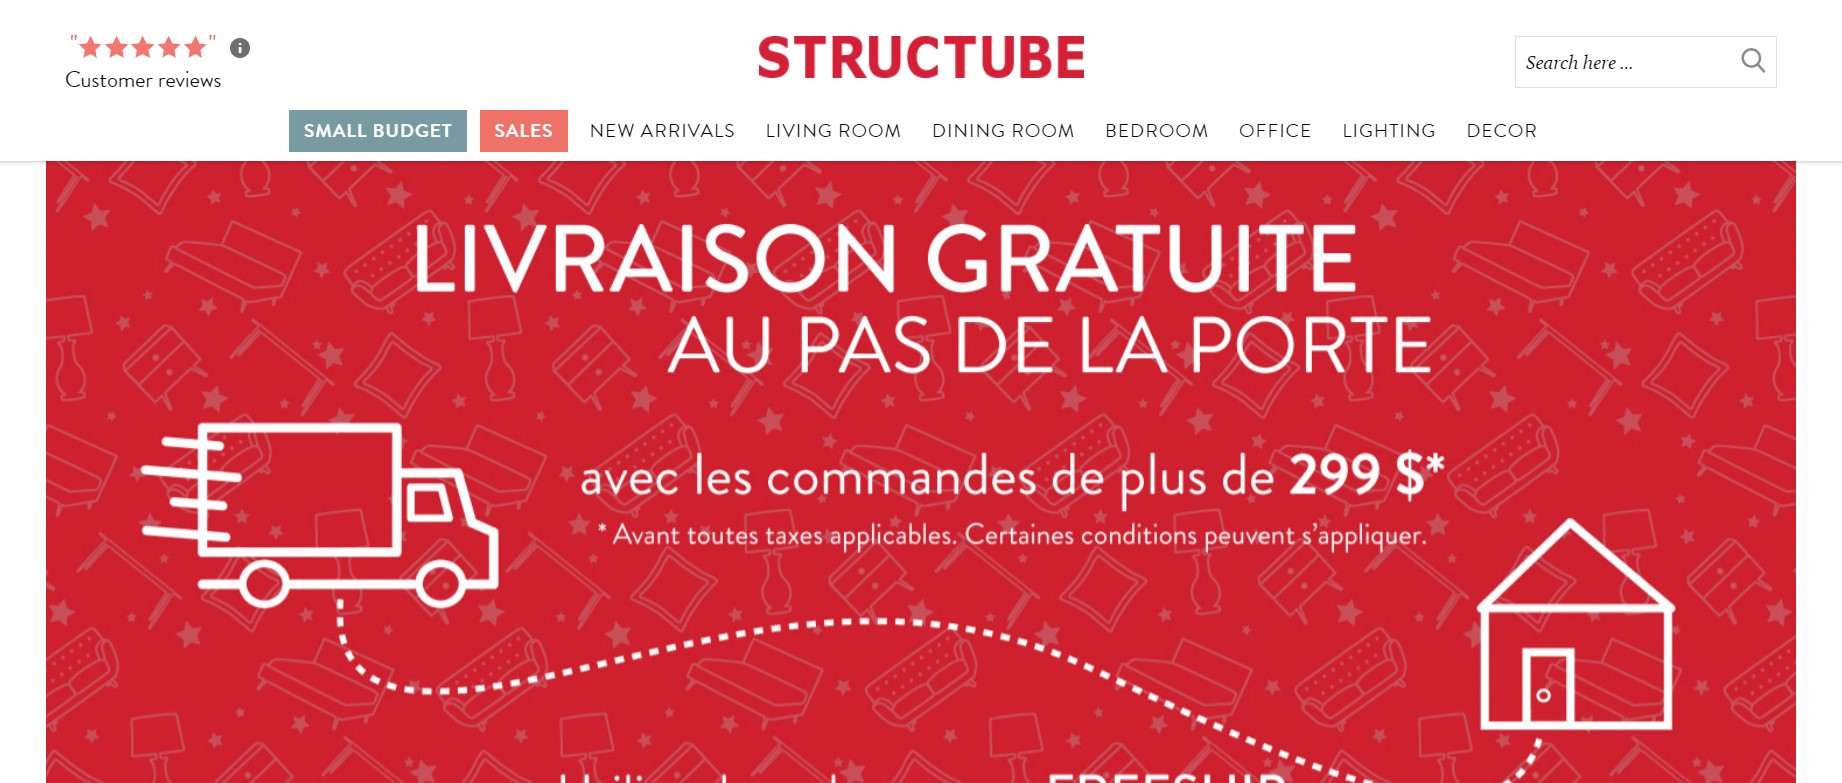 structube furniture store in quebec